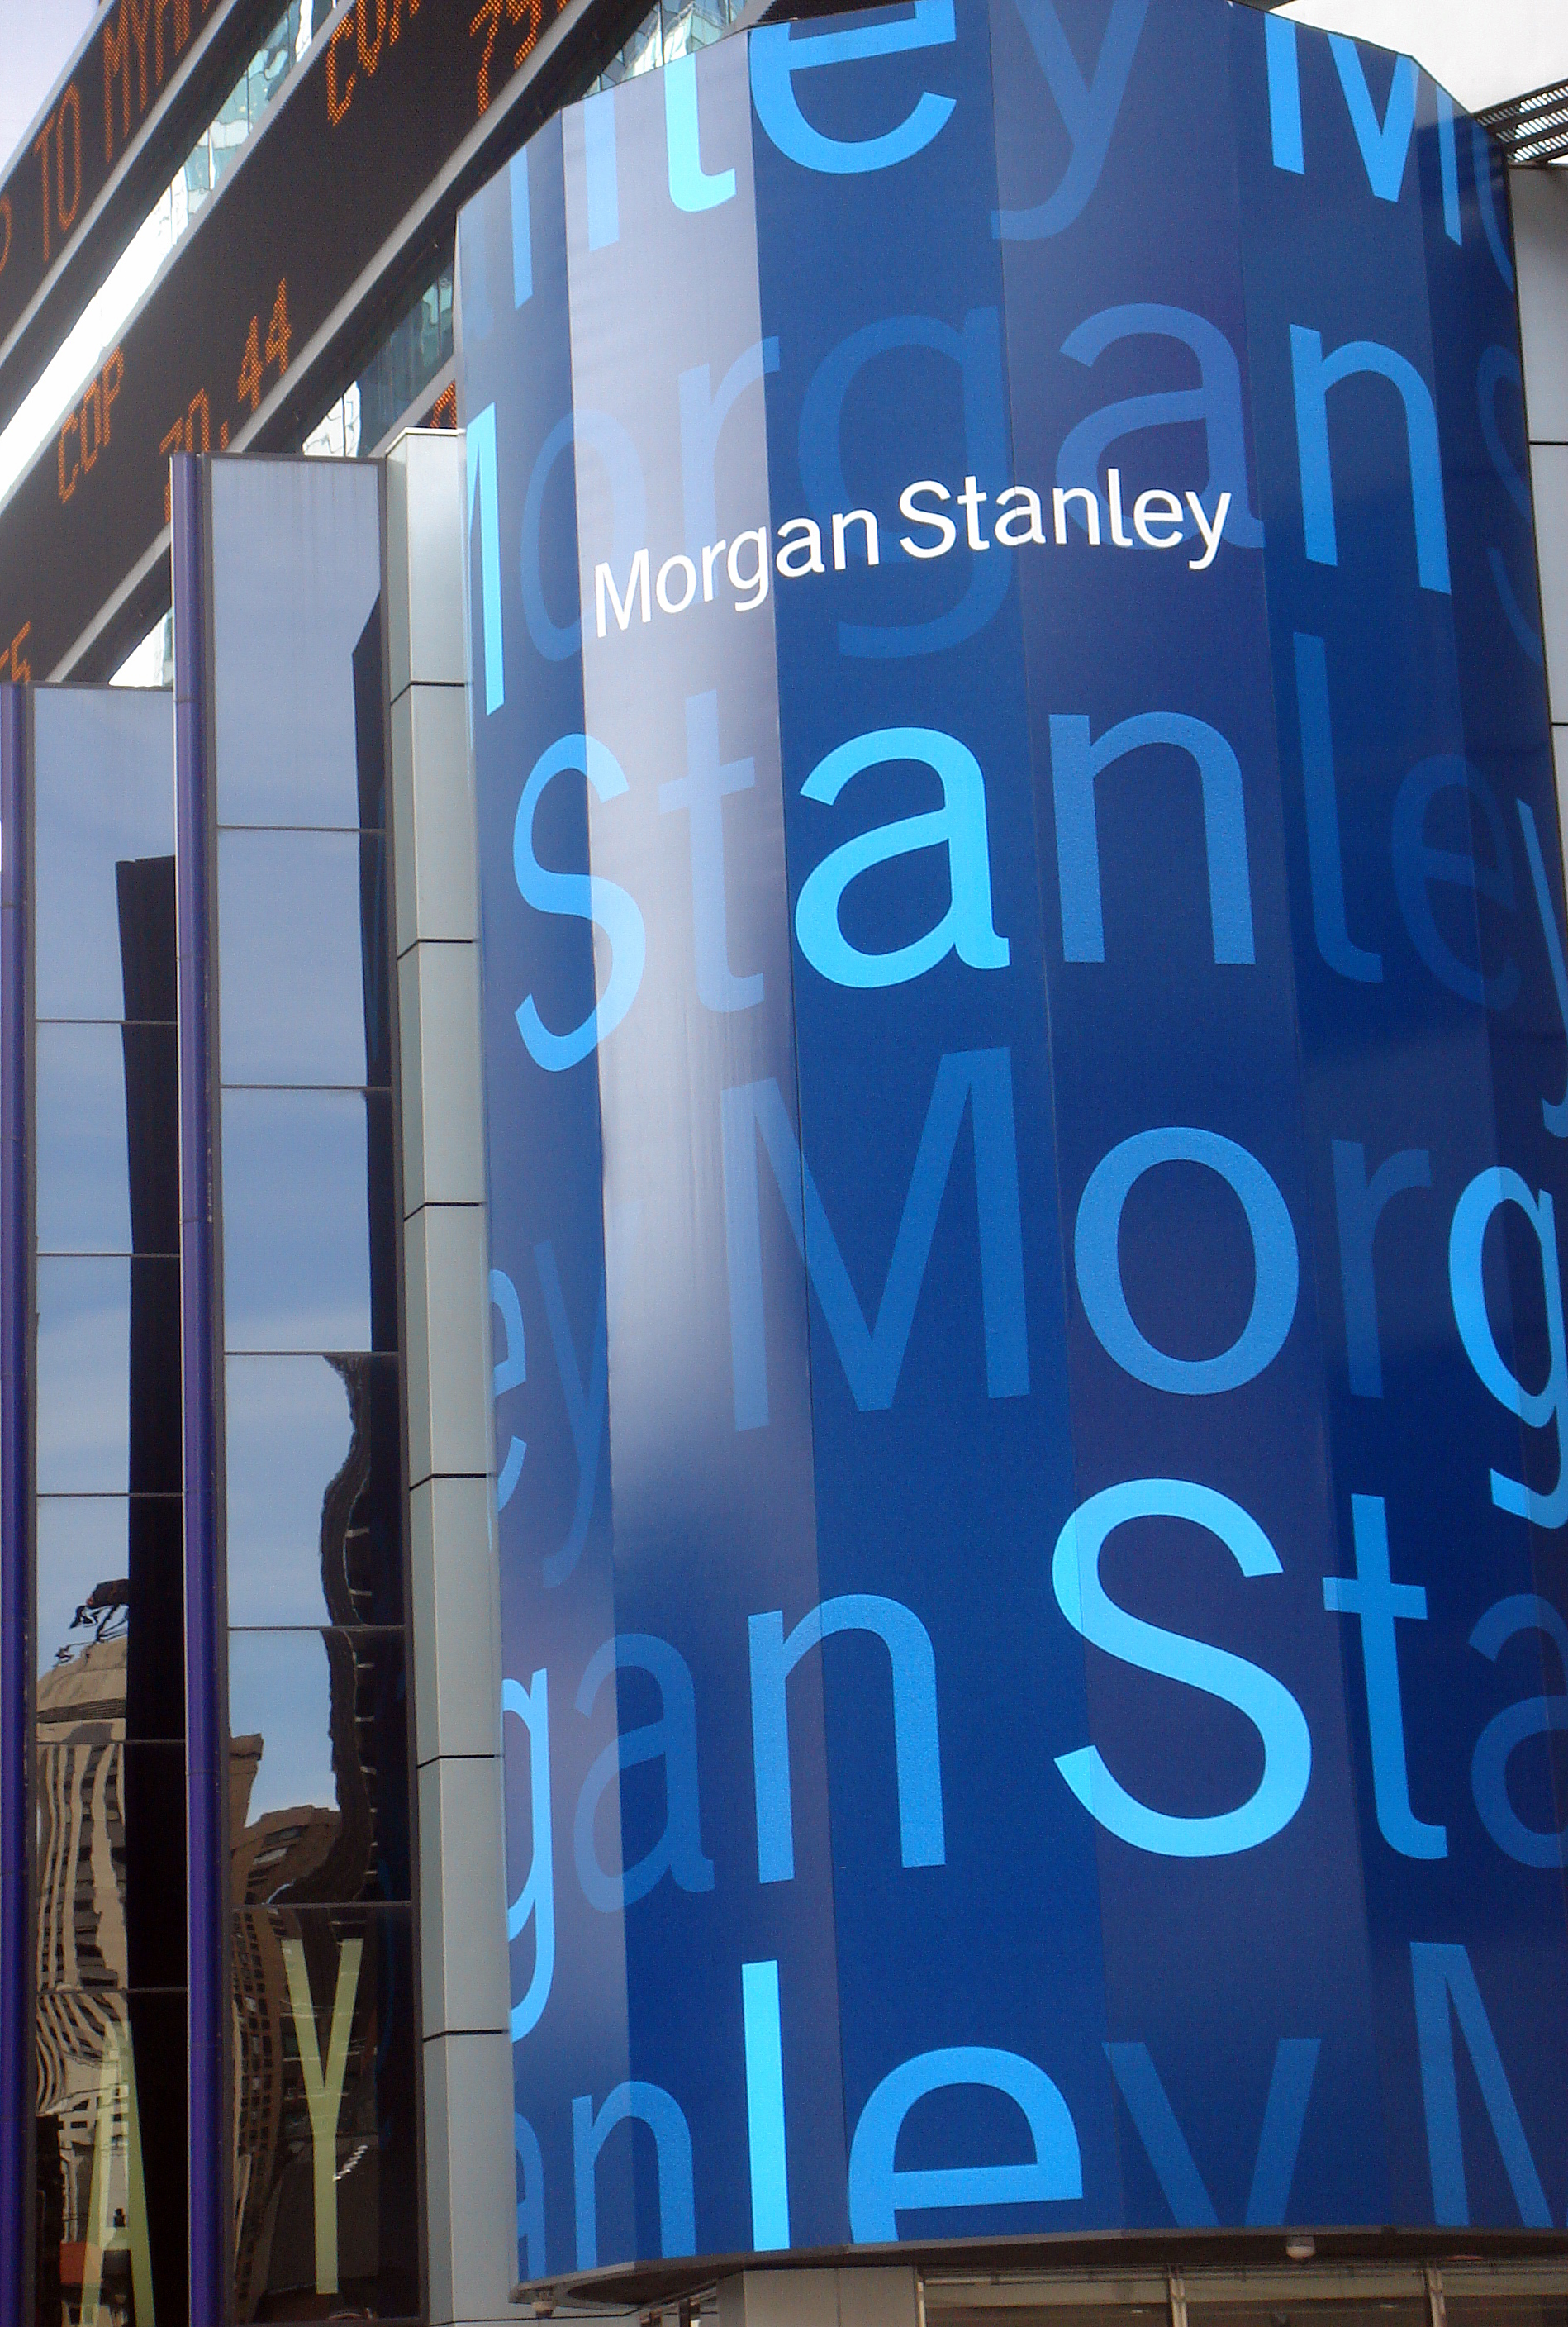 rob parson and morgan stanley Rob parson at morgan stanley (c) case solution, a year after manager rob parsons parsons decided to move promotion is parson new manager gary stuart again the.